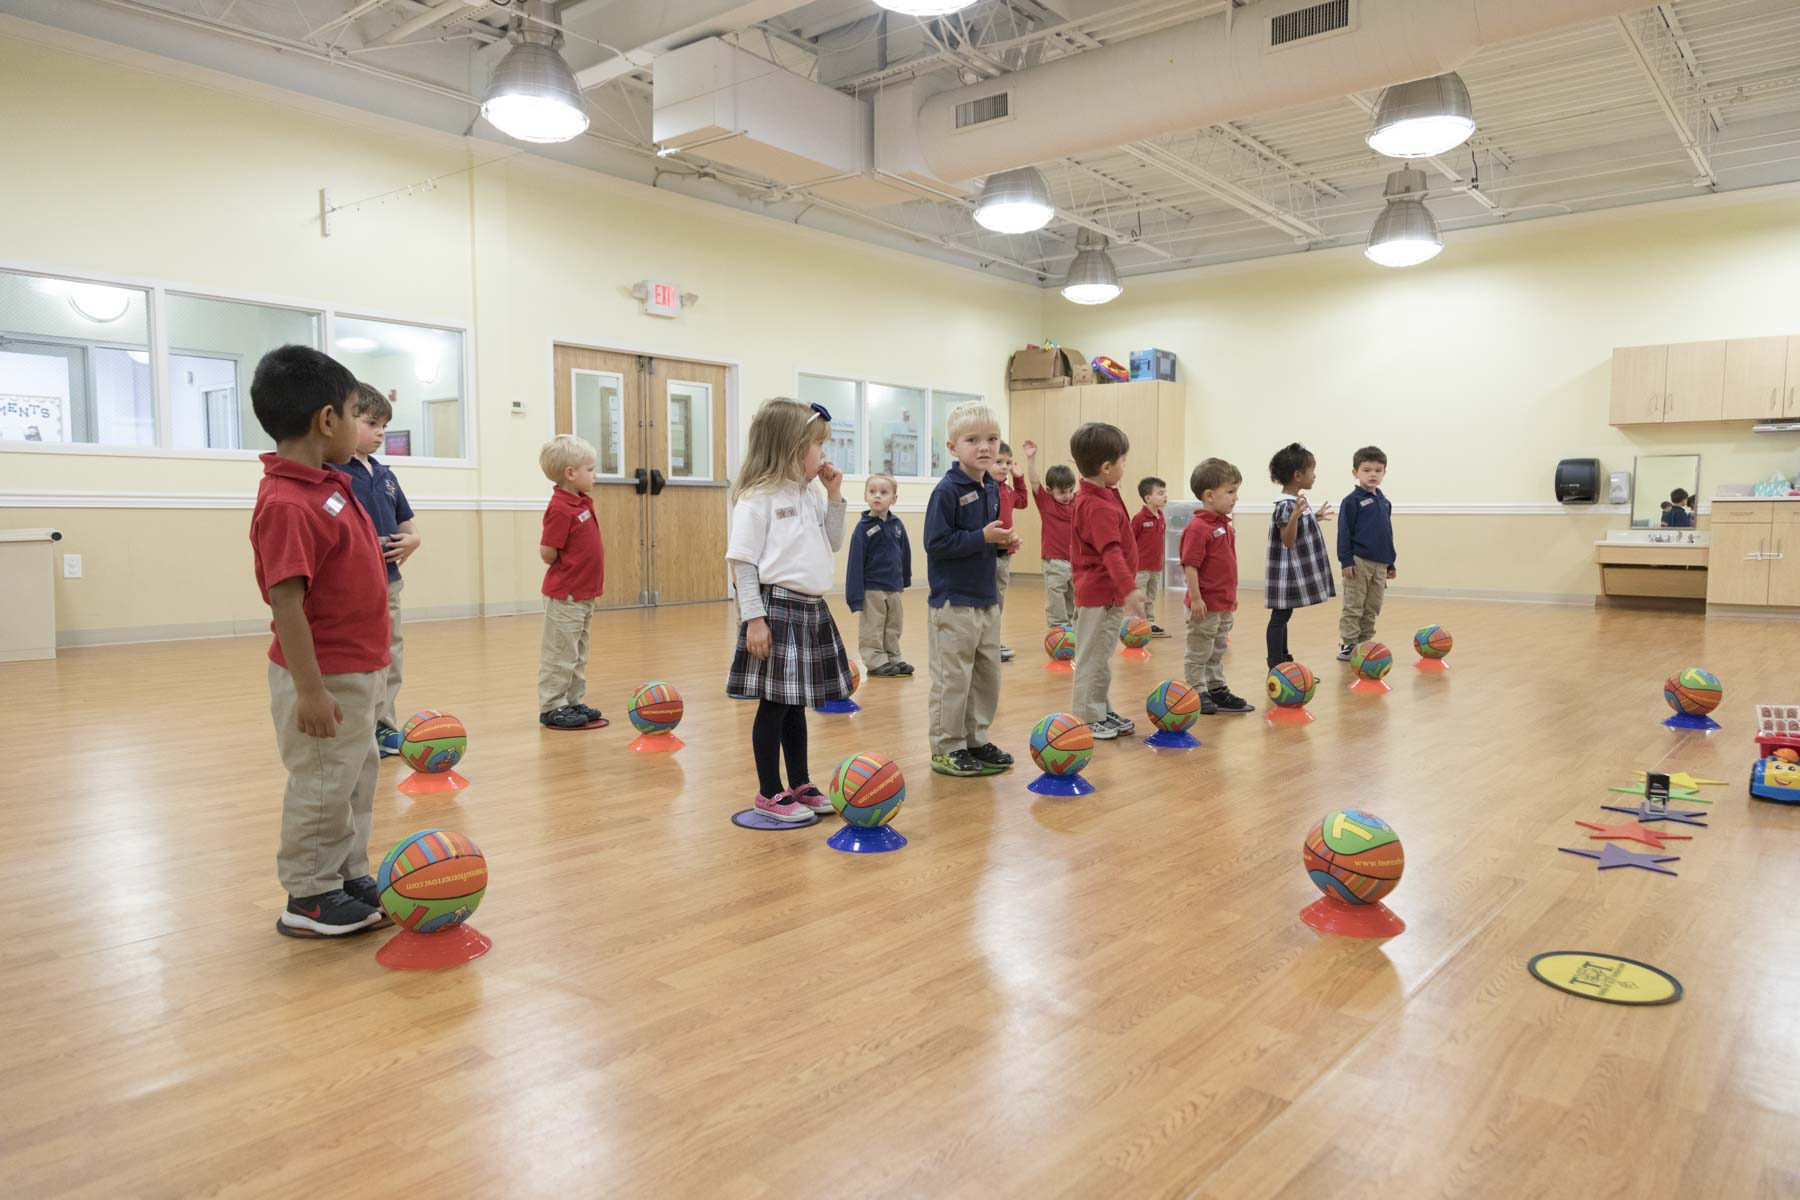 An Overview of Enrichment Courses at The Gardner School - The Gardner School